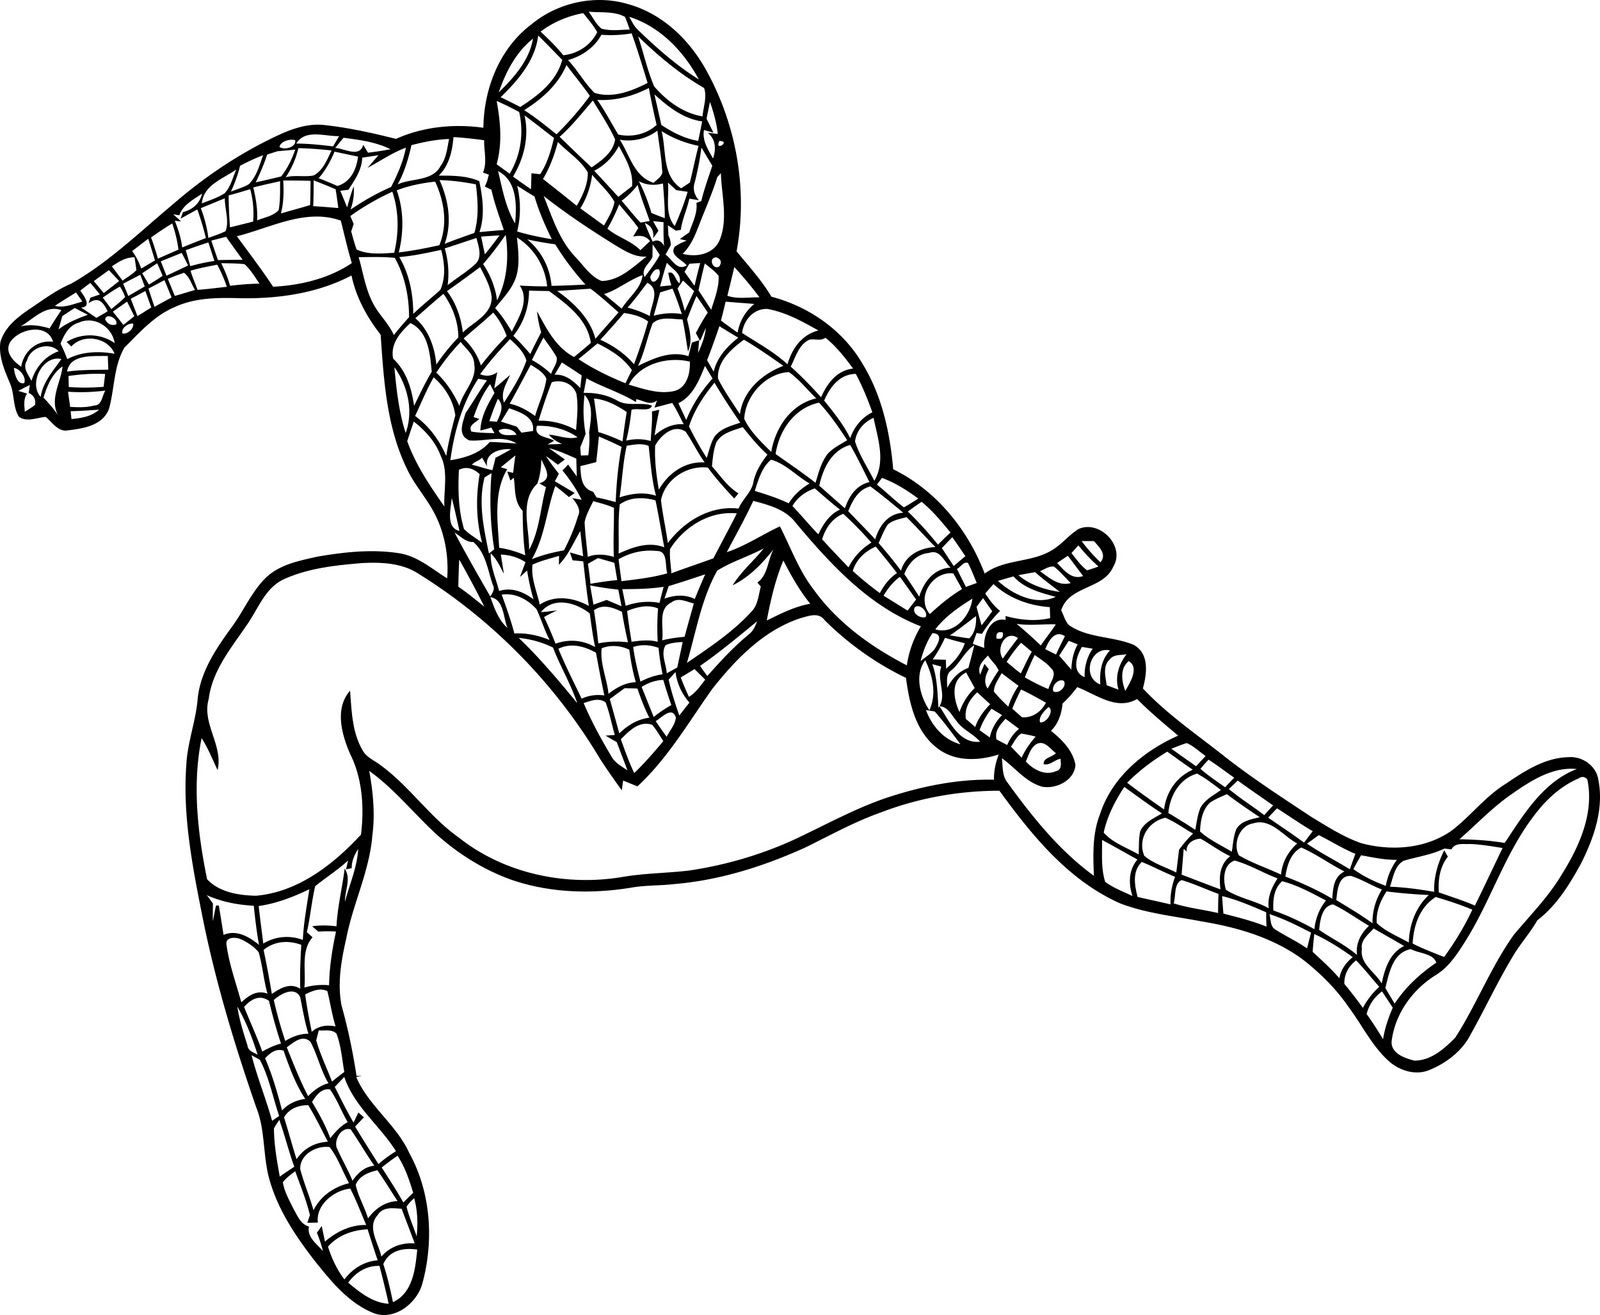 Free Printable Spiderman Coloring Pages For Kids | Projects To Try - Free Printable Spiderman Pictures